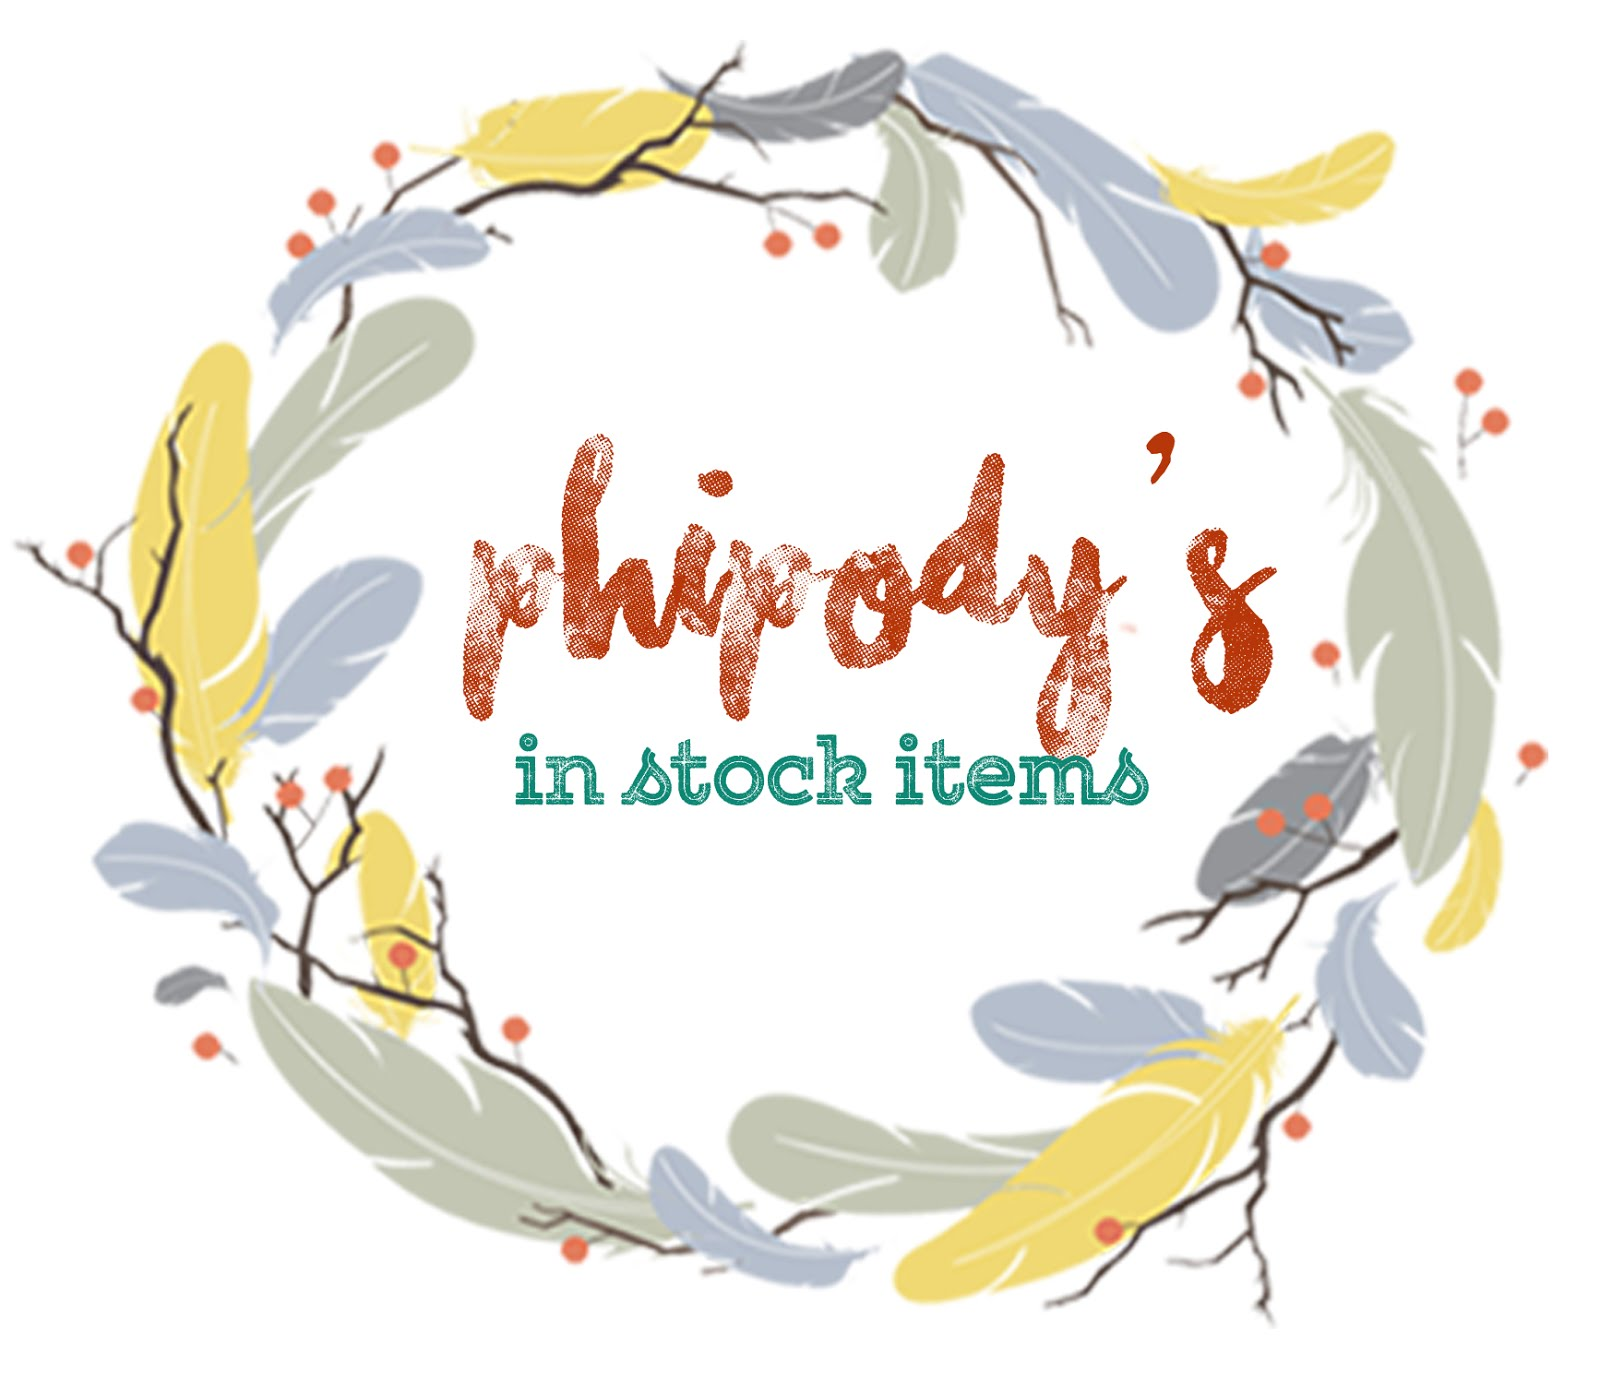 Phipody's In Stock Items